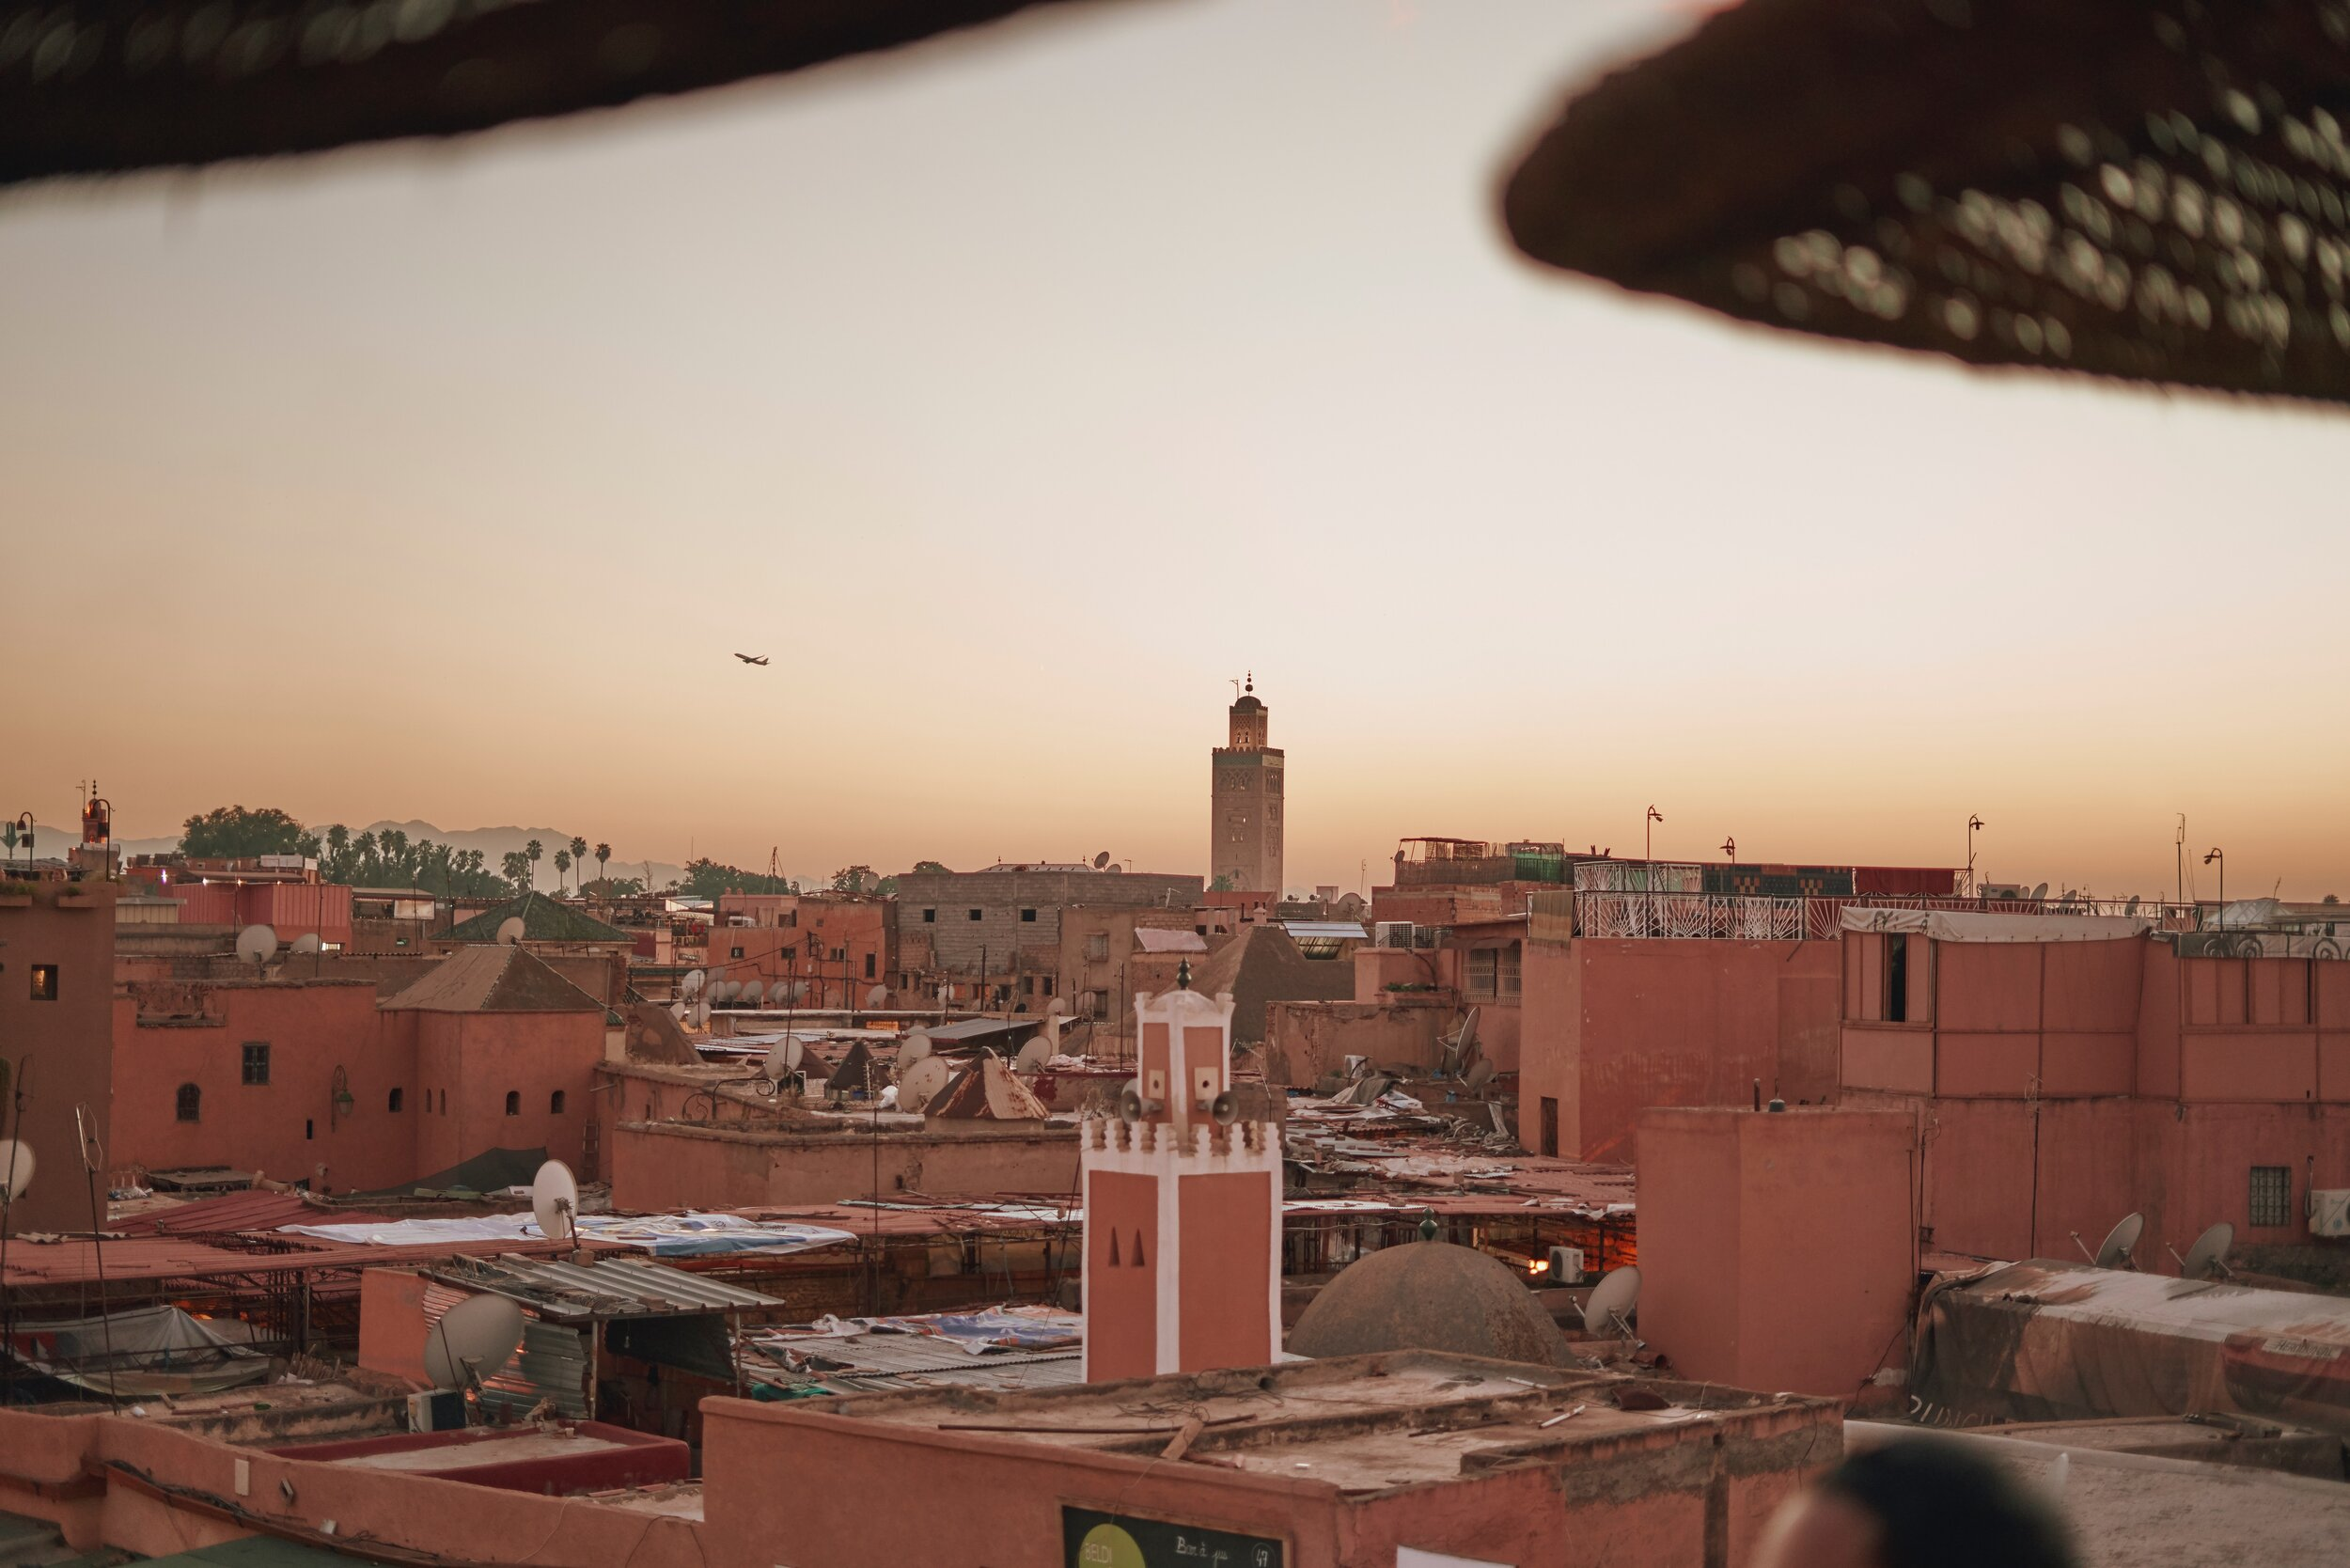 View of Marrakech Morocco - 7 Tips for Taking Photos in Crowded Places